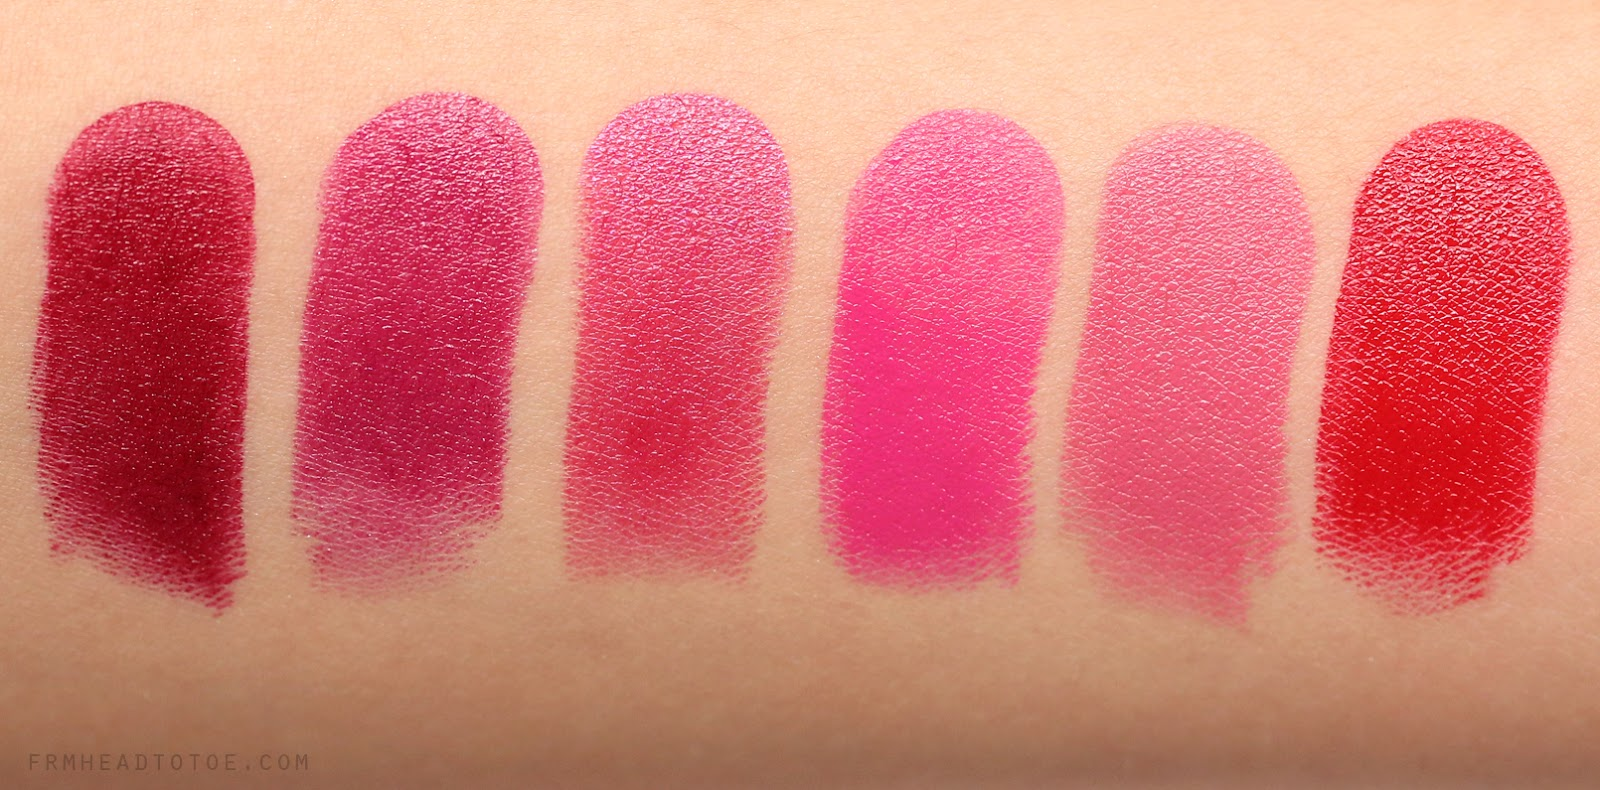 REVIEW & SWATCHES: All Urban Decay Revolution Lipsticks - From Head To ...